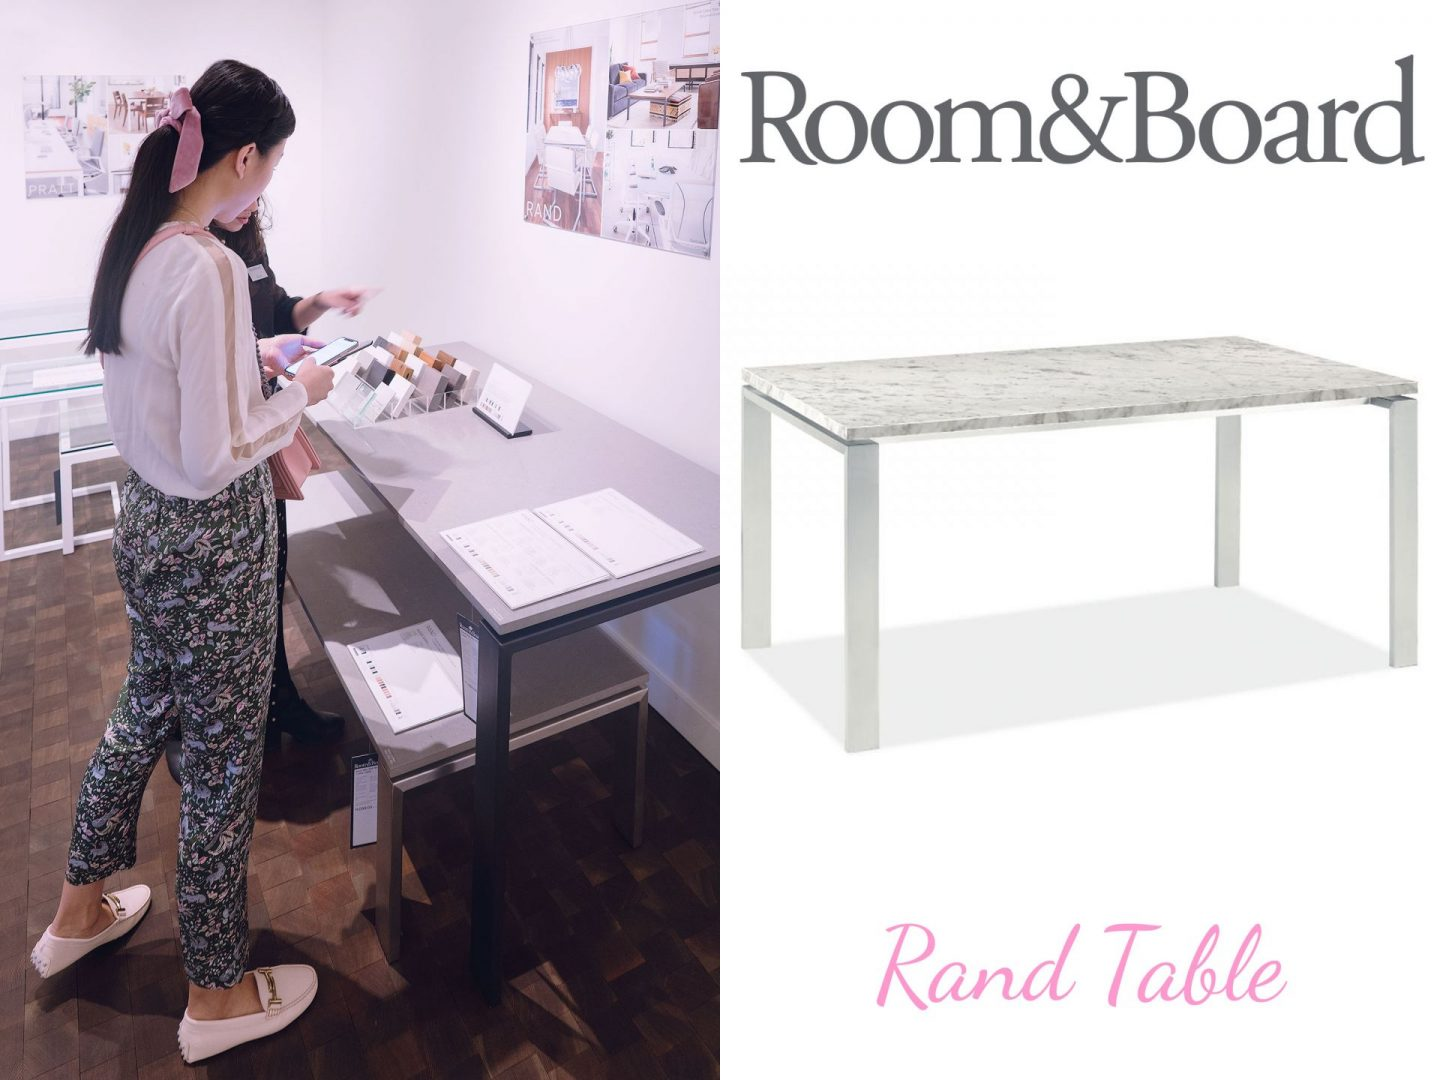 Room and Board Rand Table